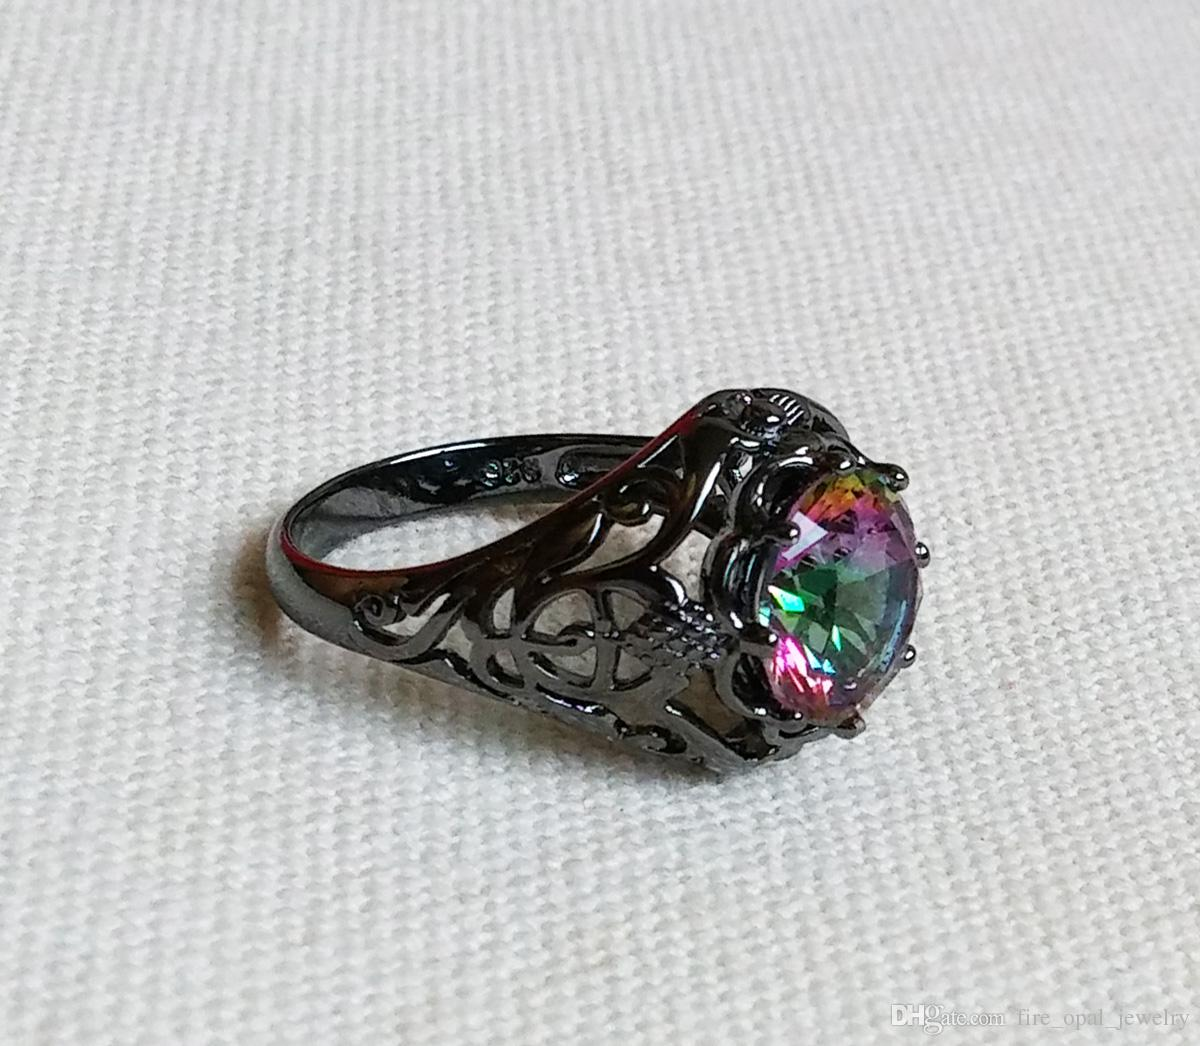 mystic jewelry topaz library pointe sandi fire rings collections virtual of